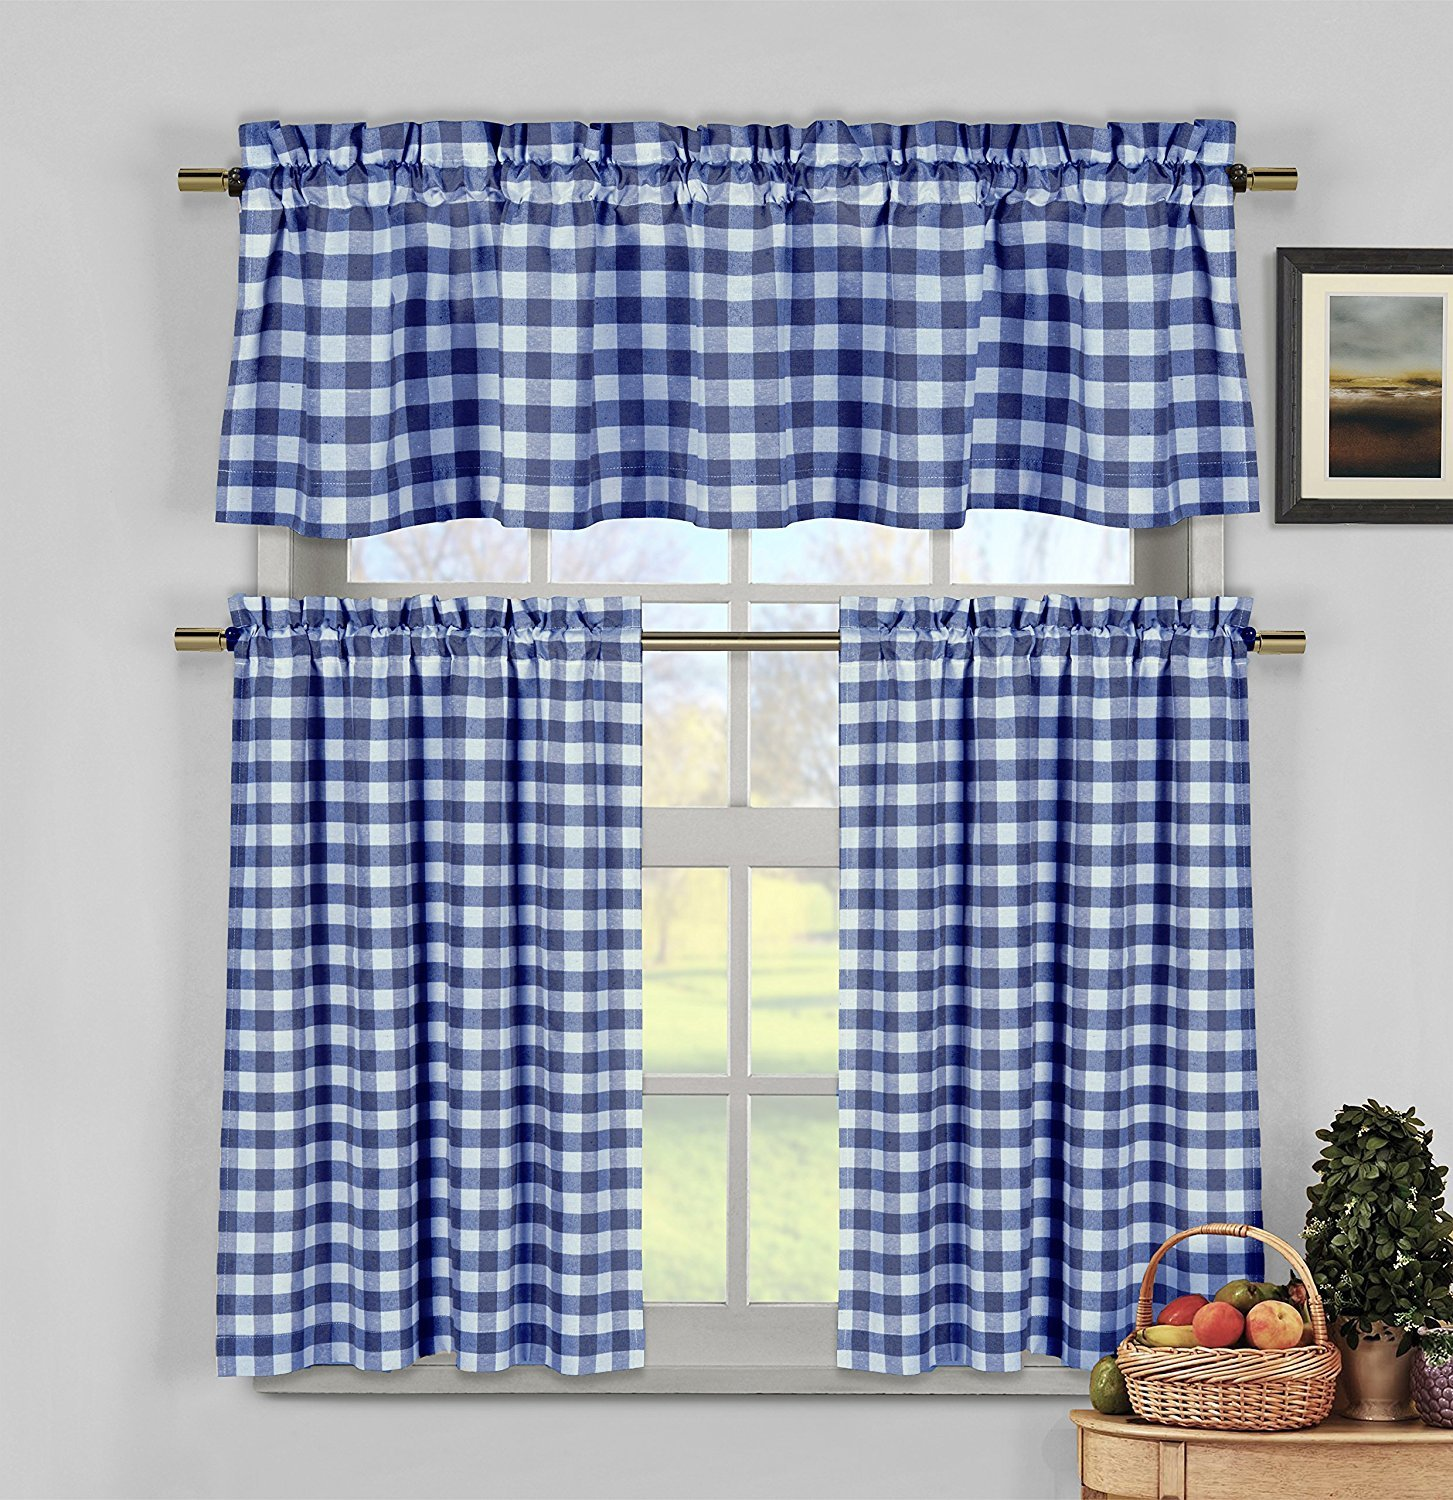 Navy Blue White Kitchen Curtains: Gingham Checkered Plaid Design COMINHKPR142781